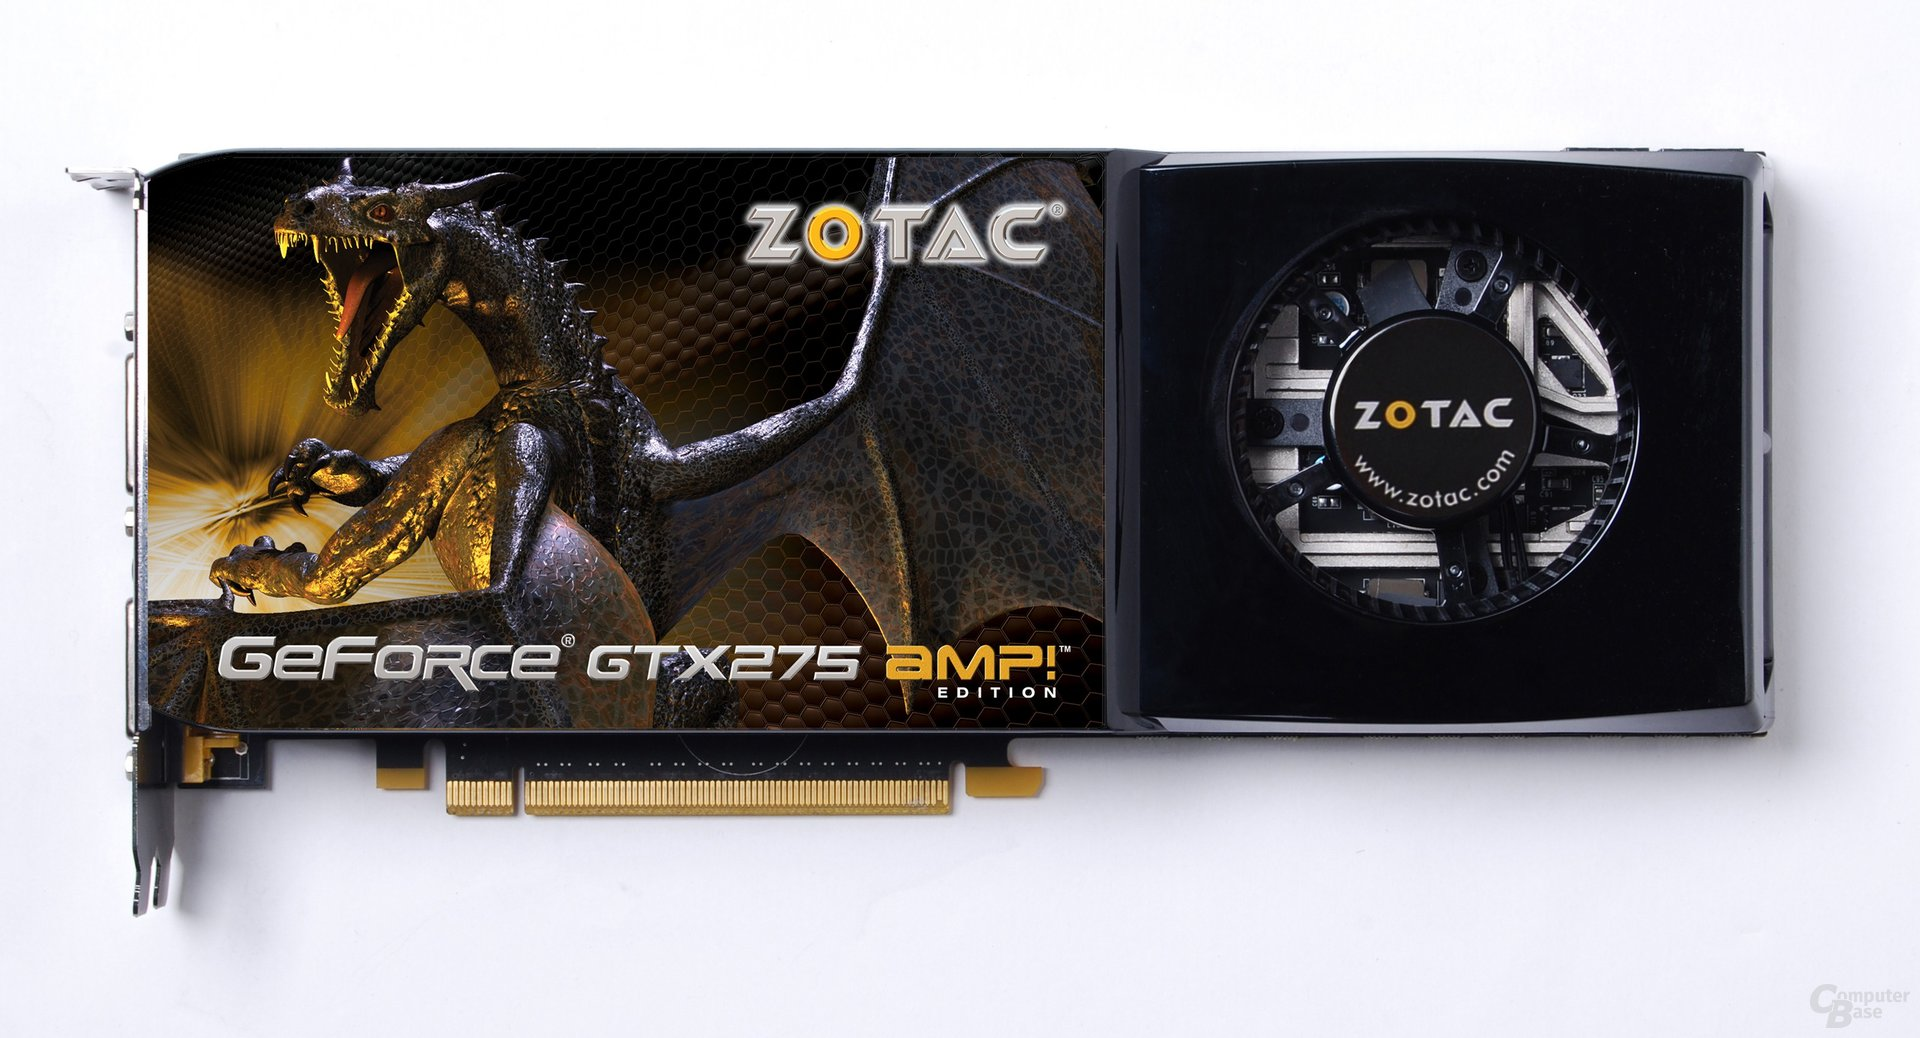 Zotac GeForce GTX 275 AMP!-Edition